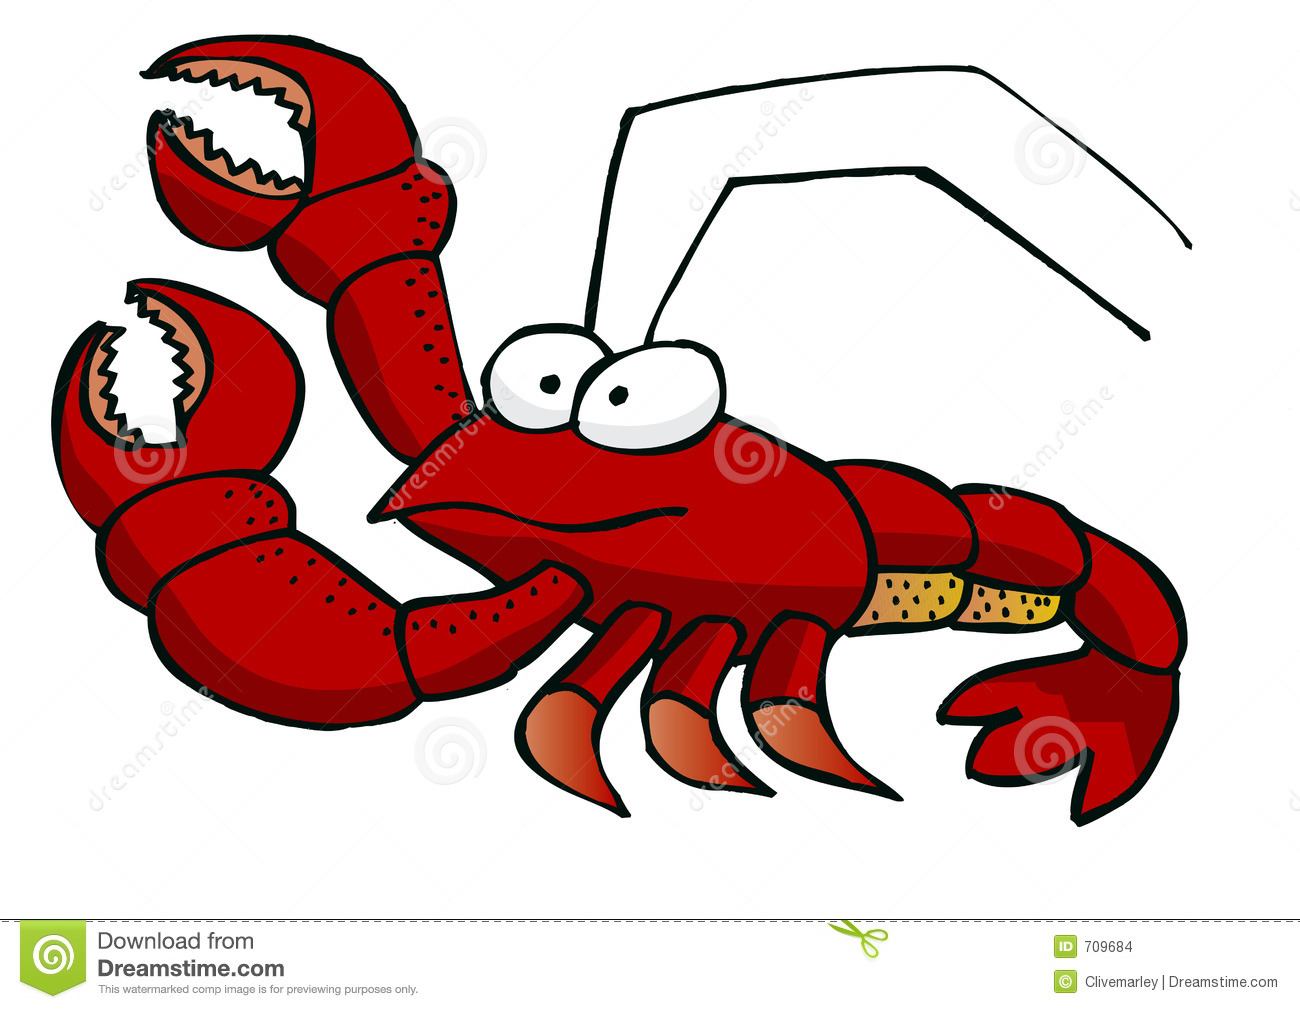 Clipart lobster banner freeuse download 34+ Clipart Lobster | ClipartLook banner freeuse download